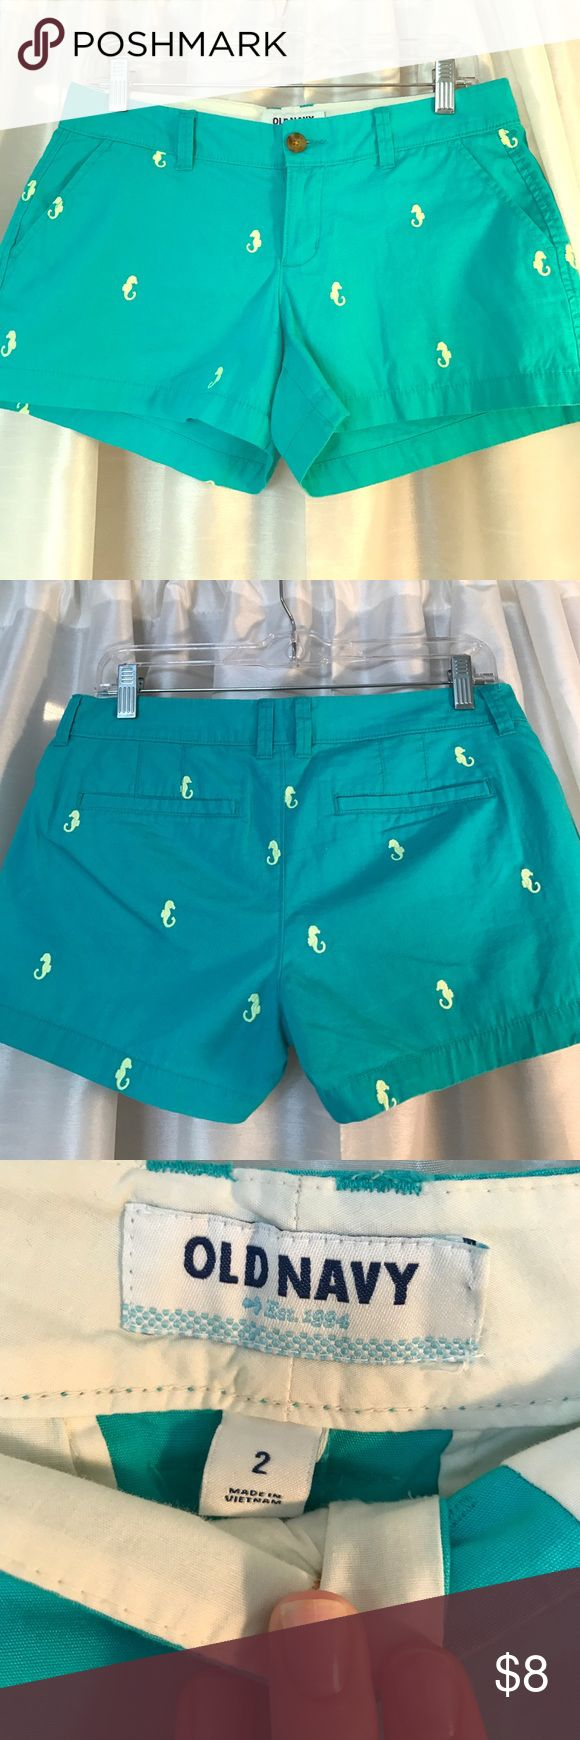 Preppy Teal Shorts with Seahorses So preppy and cute! Teal Shorts with lime green embroidered sea horses from Old Navy. Great condition. Old Navy Shorts